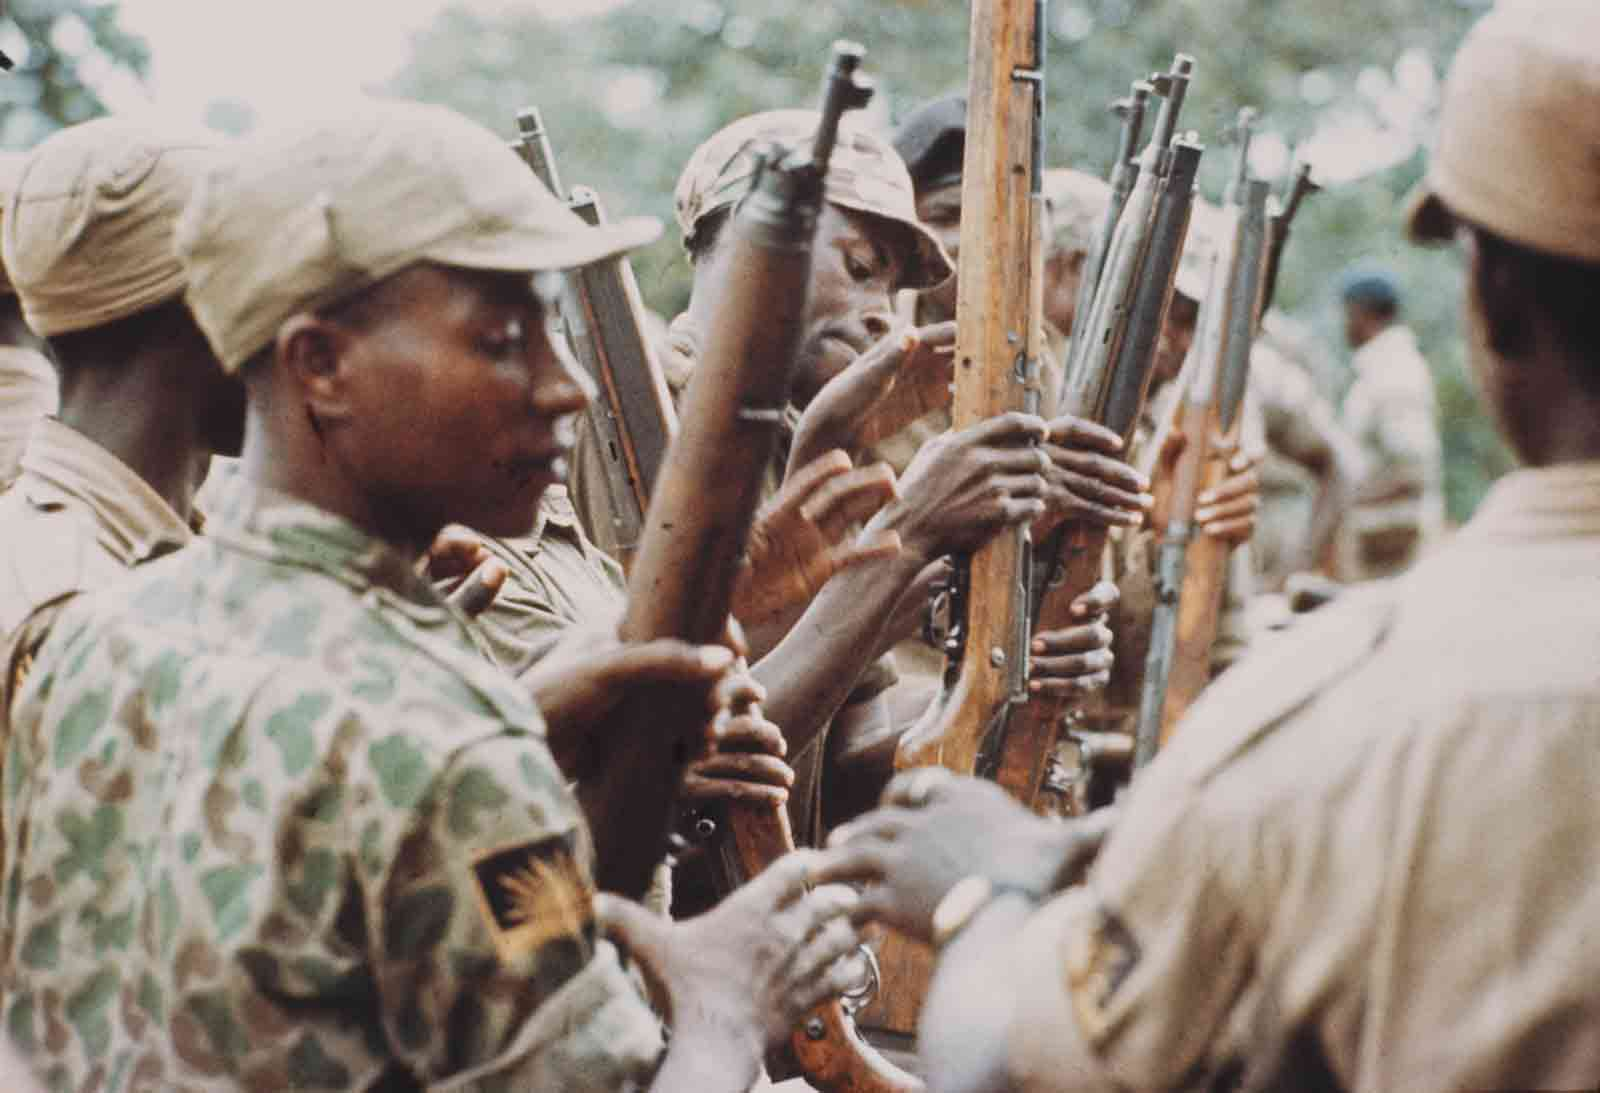 Young soldiers training to fight for the Republic of Biafra in the Biafran War, Nigeria, August 1968